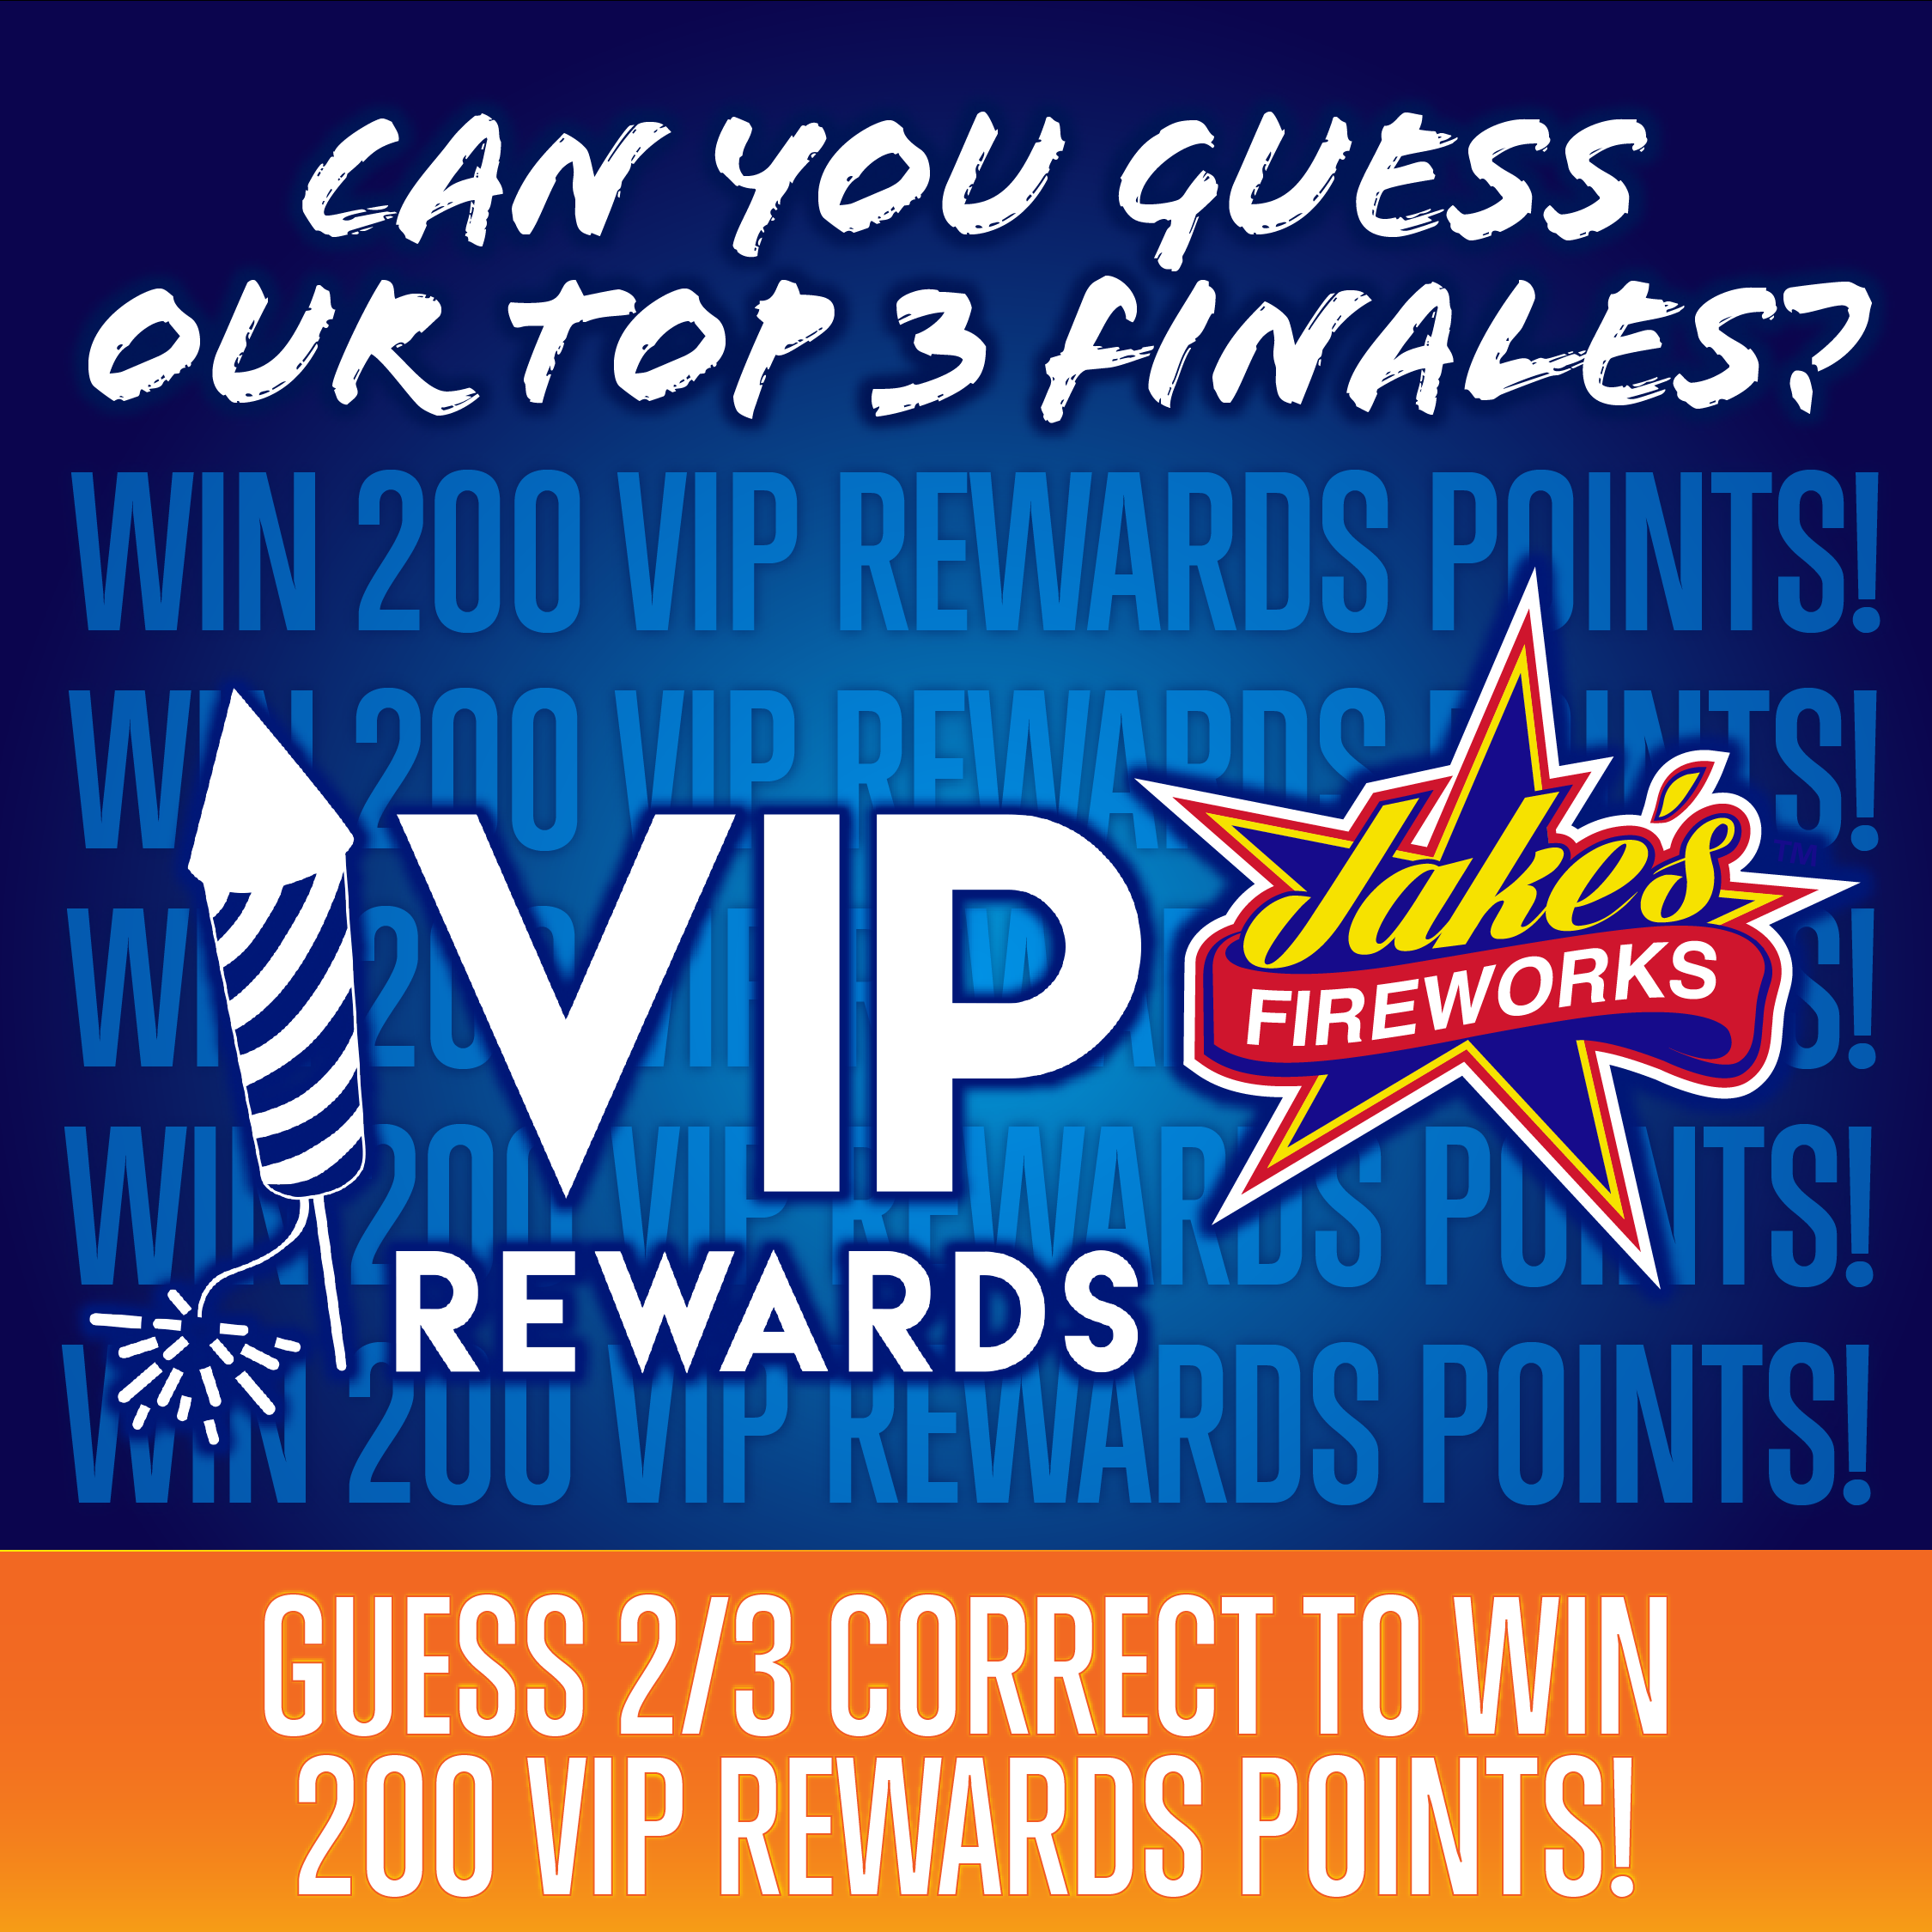 Guess 2/3 Correct and WIN 200 VIP Rewards Points!